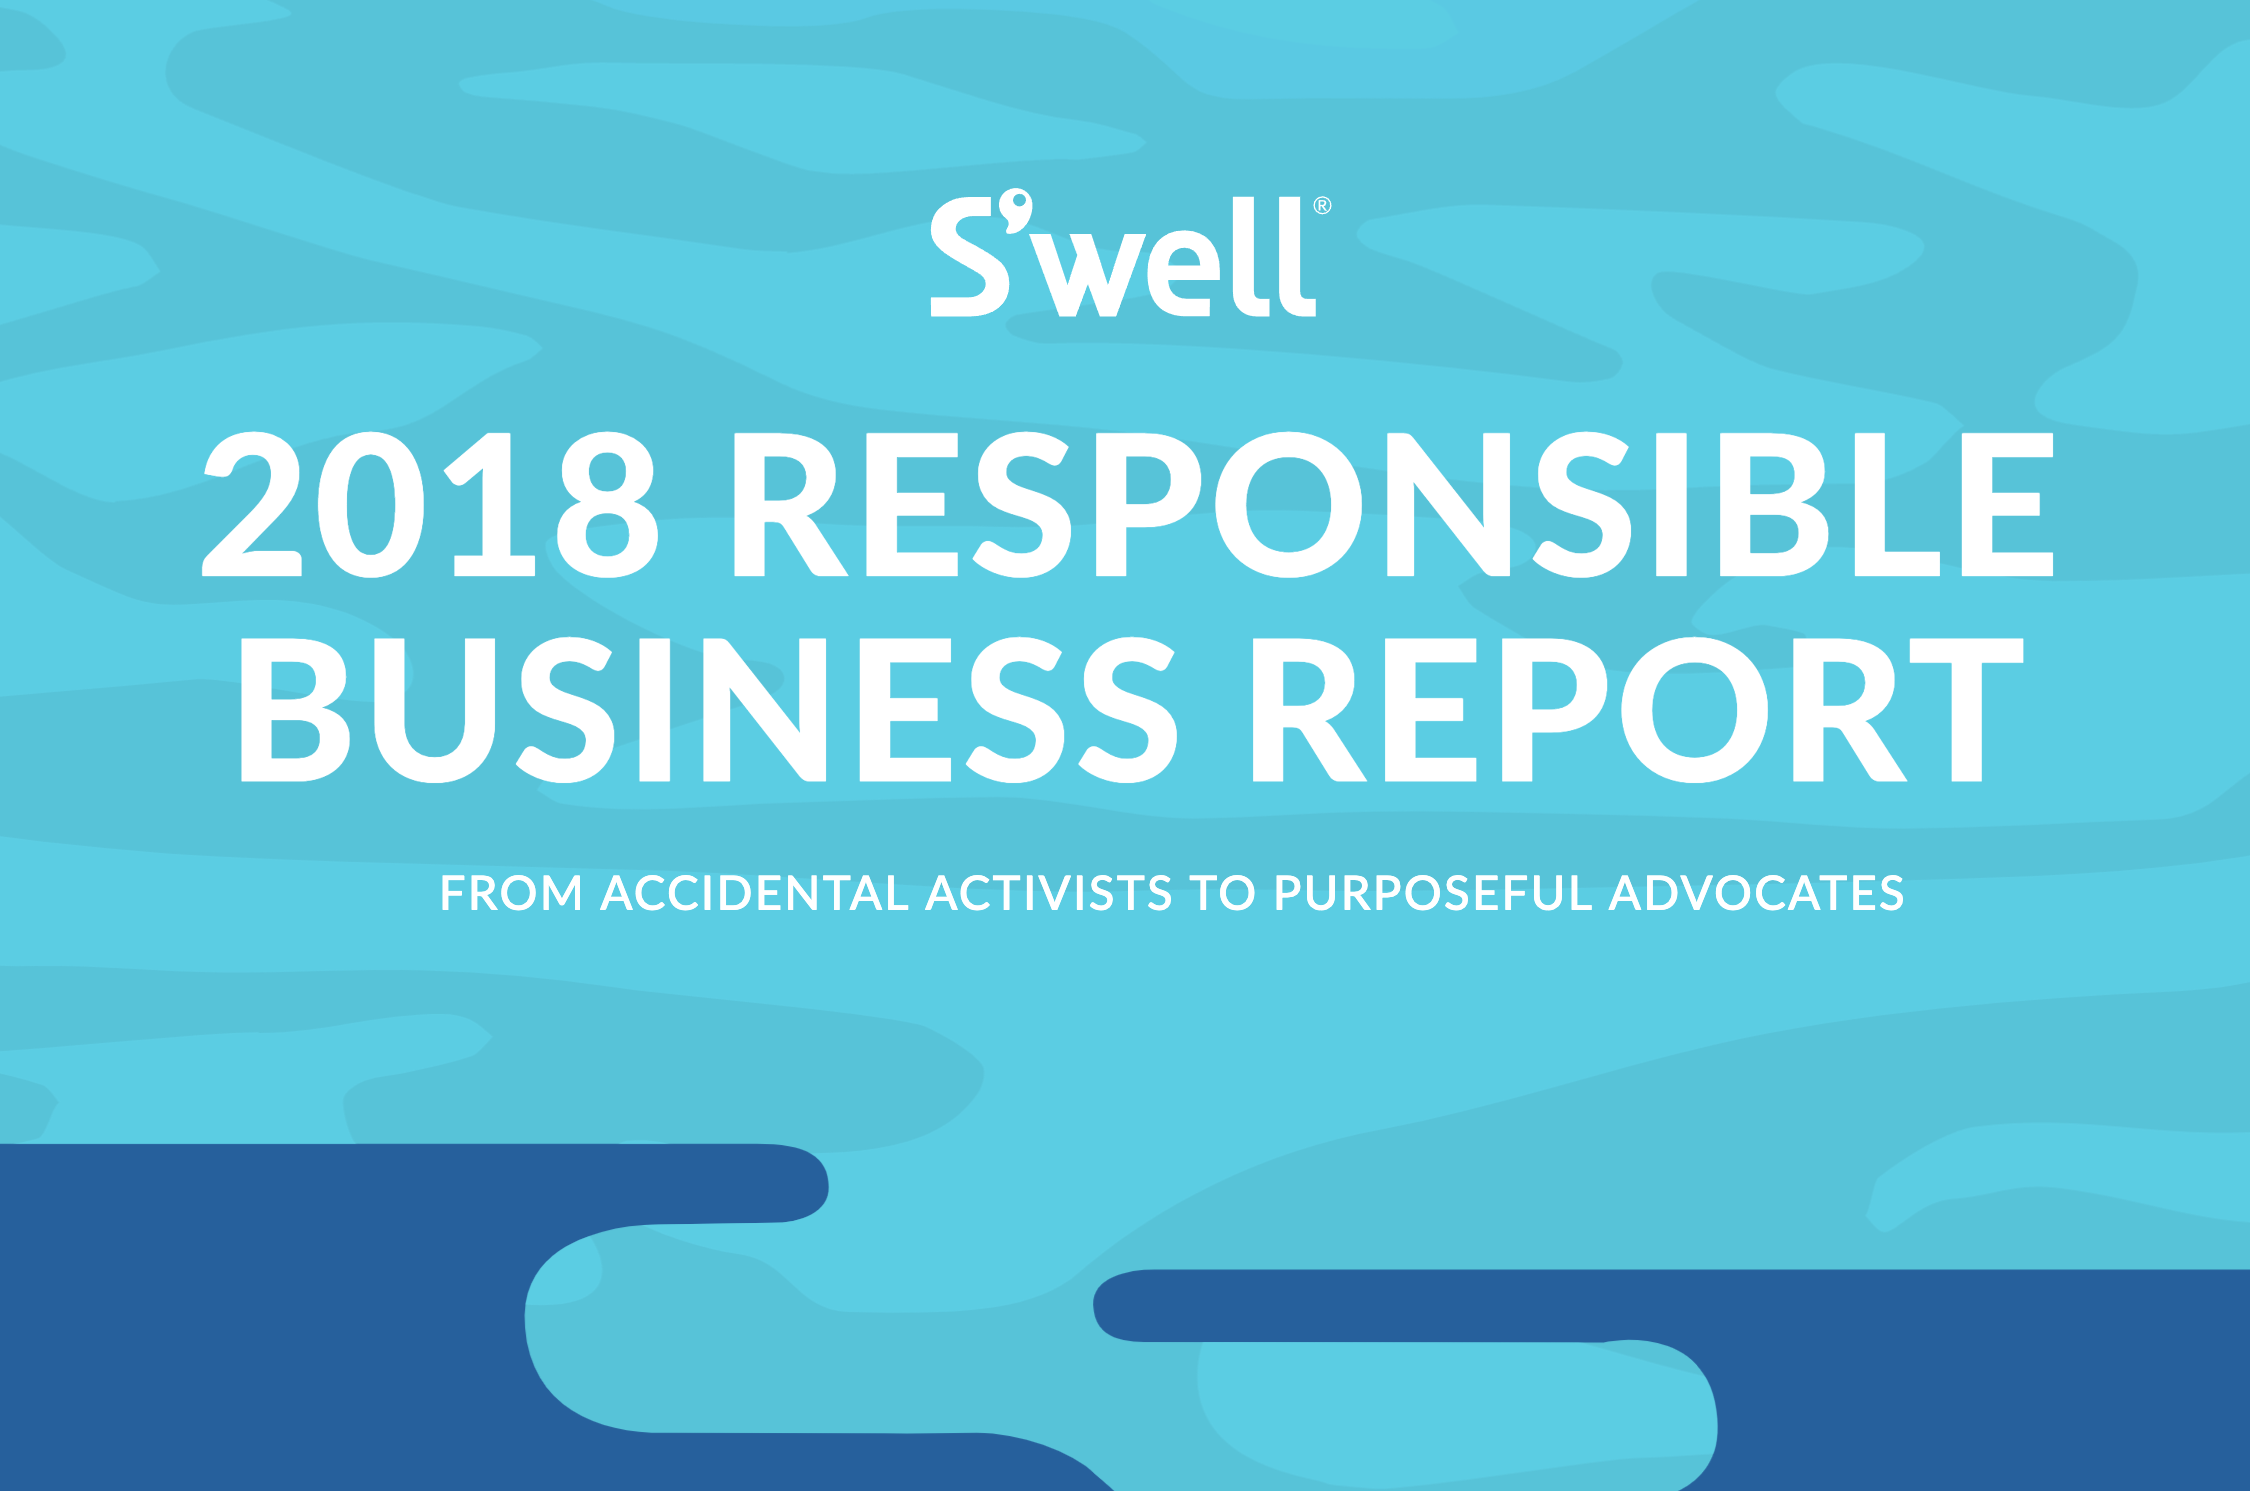 S'well Responsible Business Report